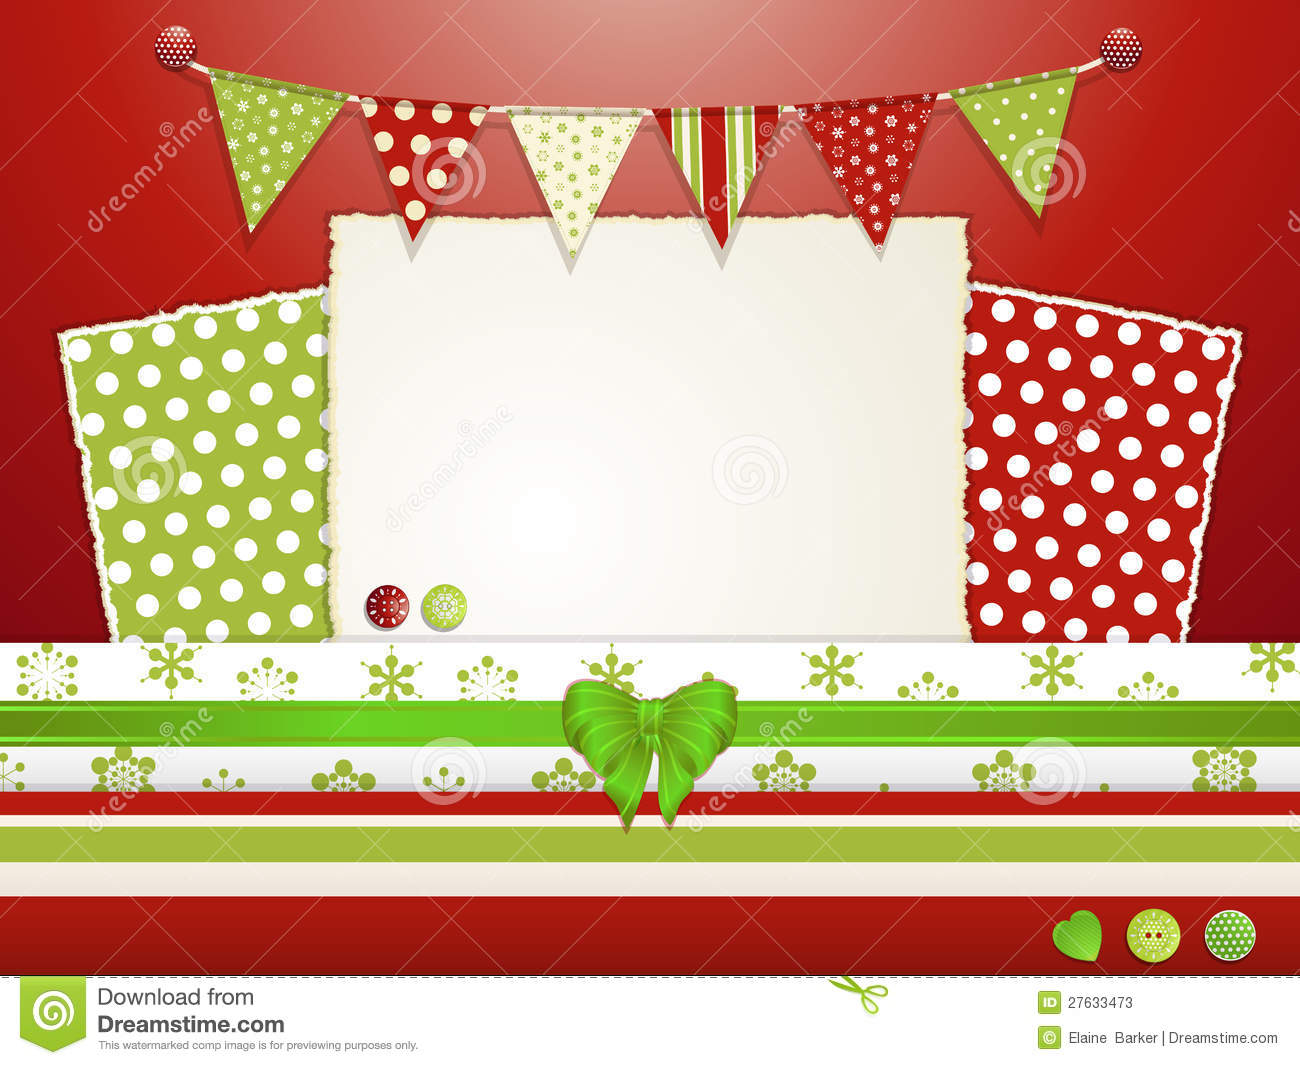 Christmas Scrapbooking Layout 2 Stock Vector - Image: 27633473